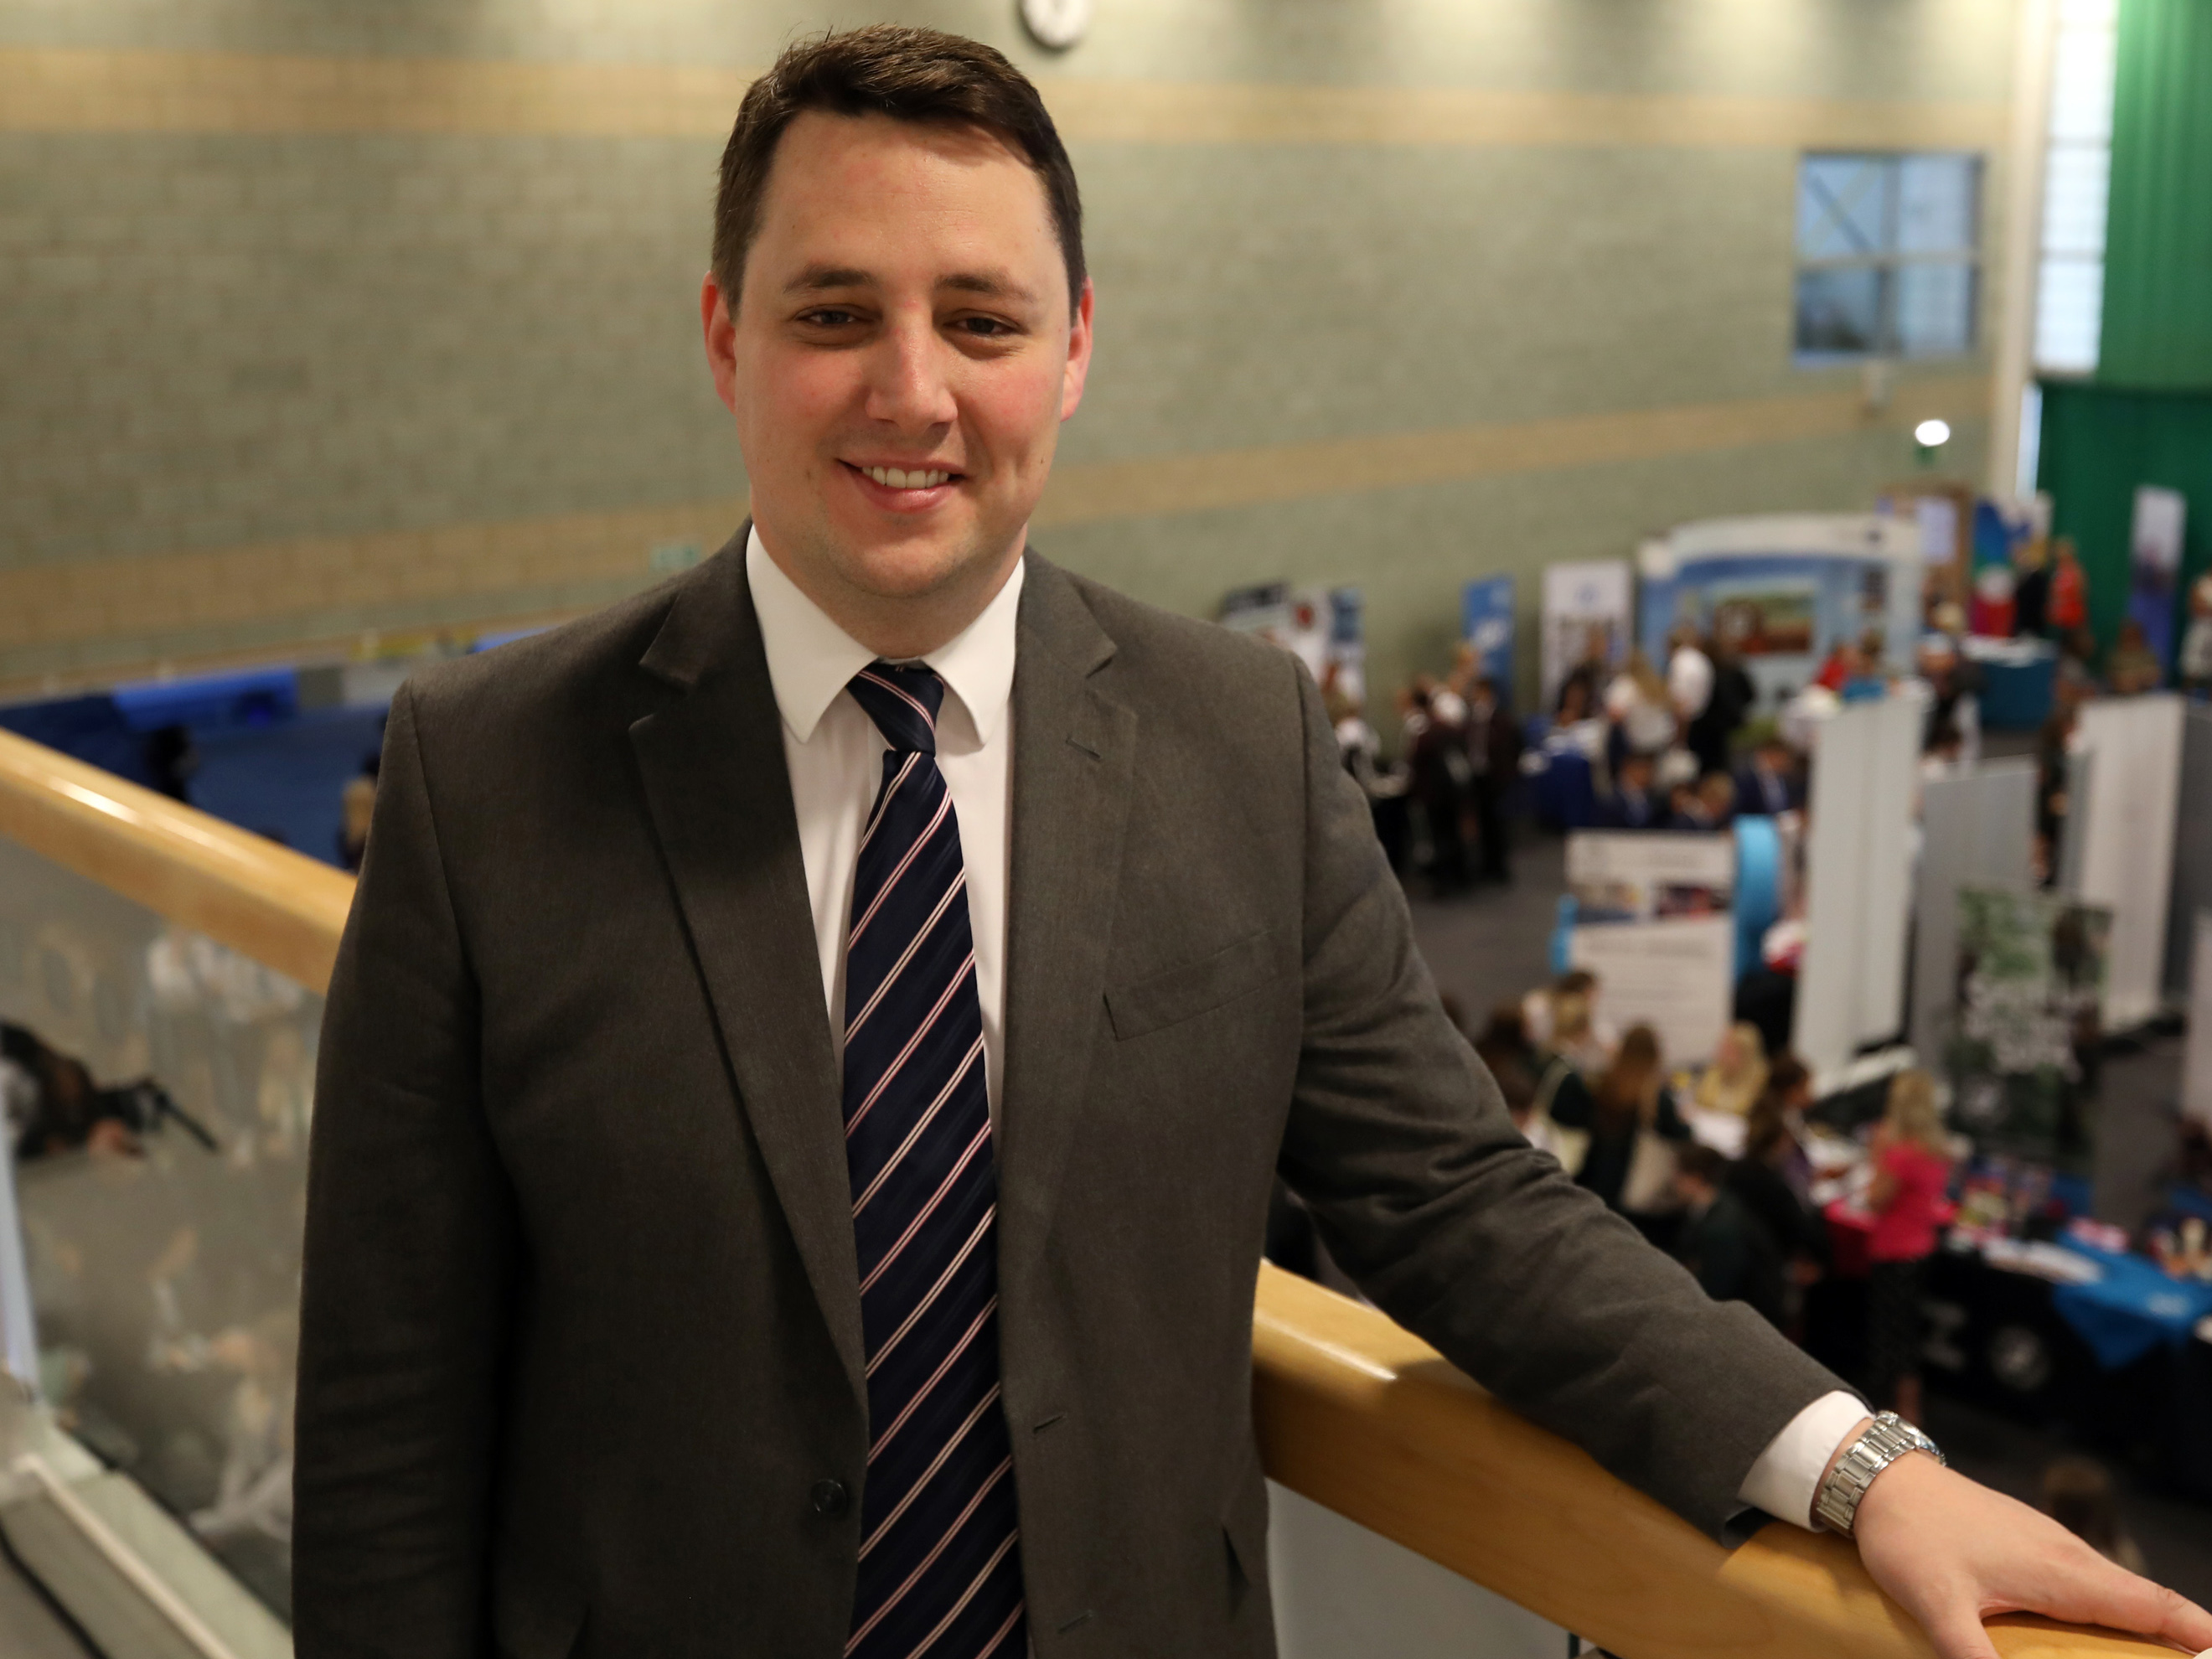 Tees Valley Mayor Ben Houchen at the Tees Valley Skills and STEM event.. Link to Tees Valley Skills and STEM event hailed a success.